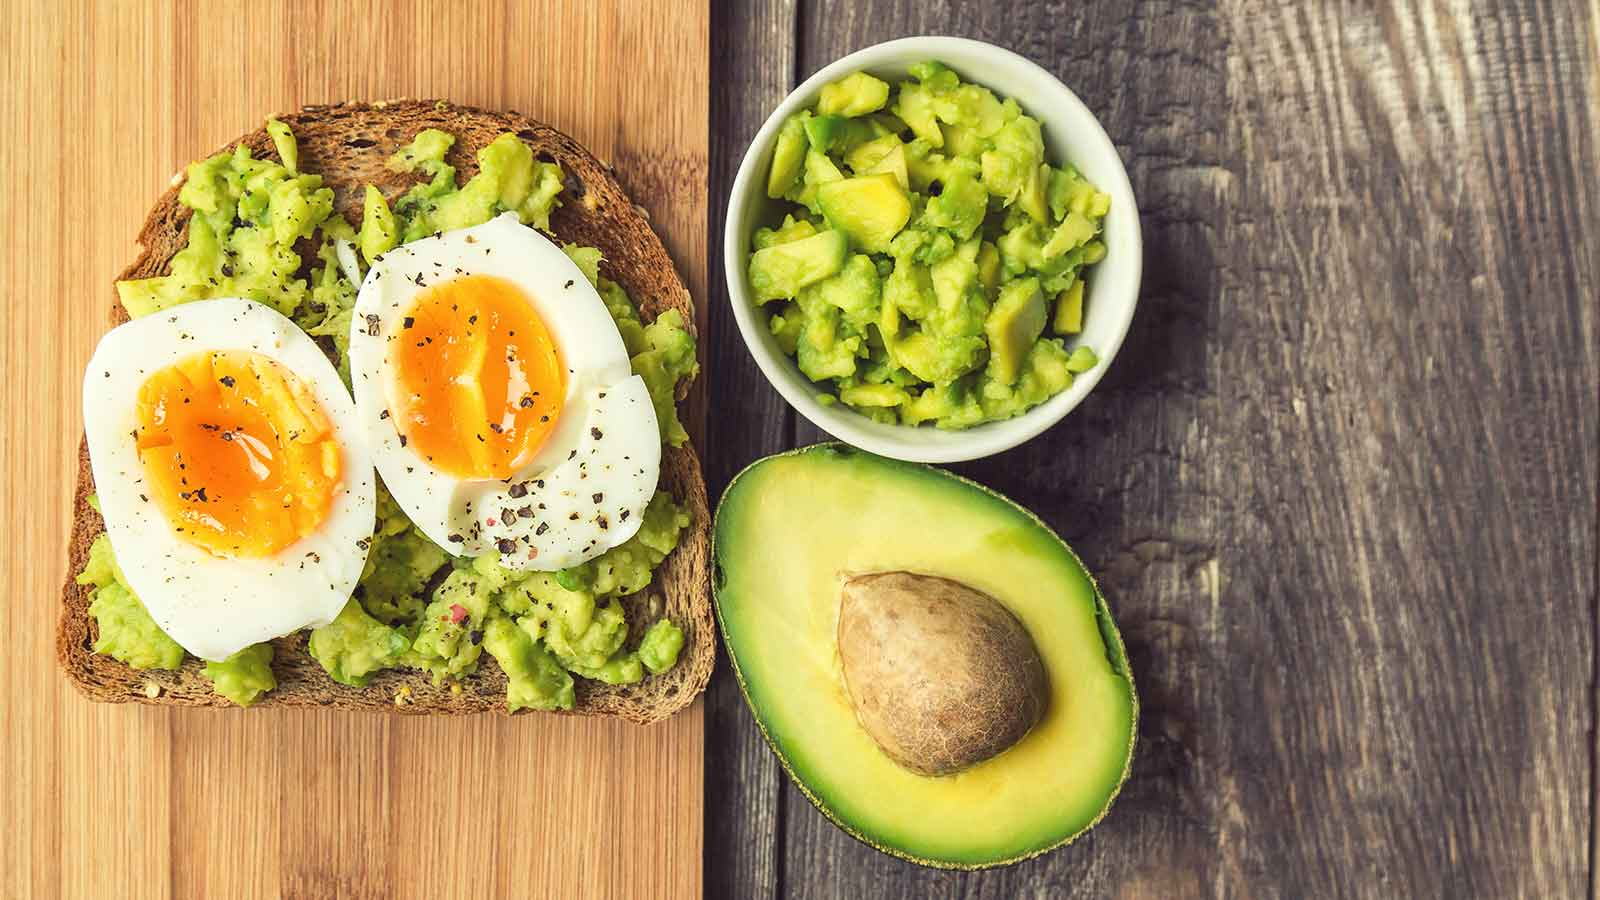 avocado with eggs on toast, sitting on a bamboo cutting board next to mashed up avocado